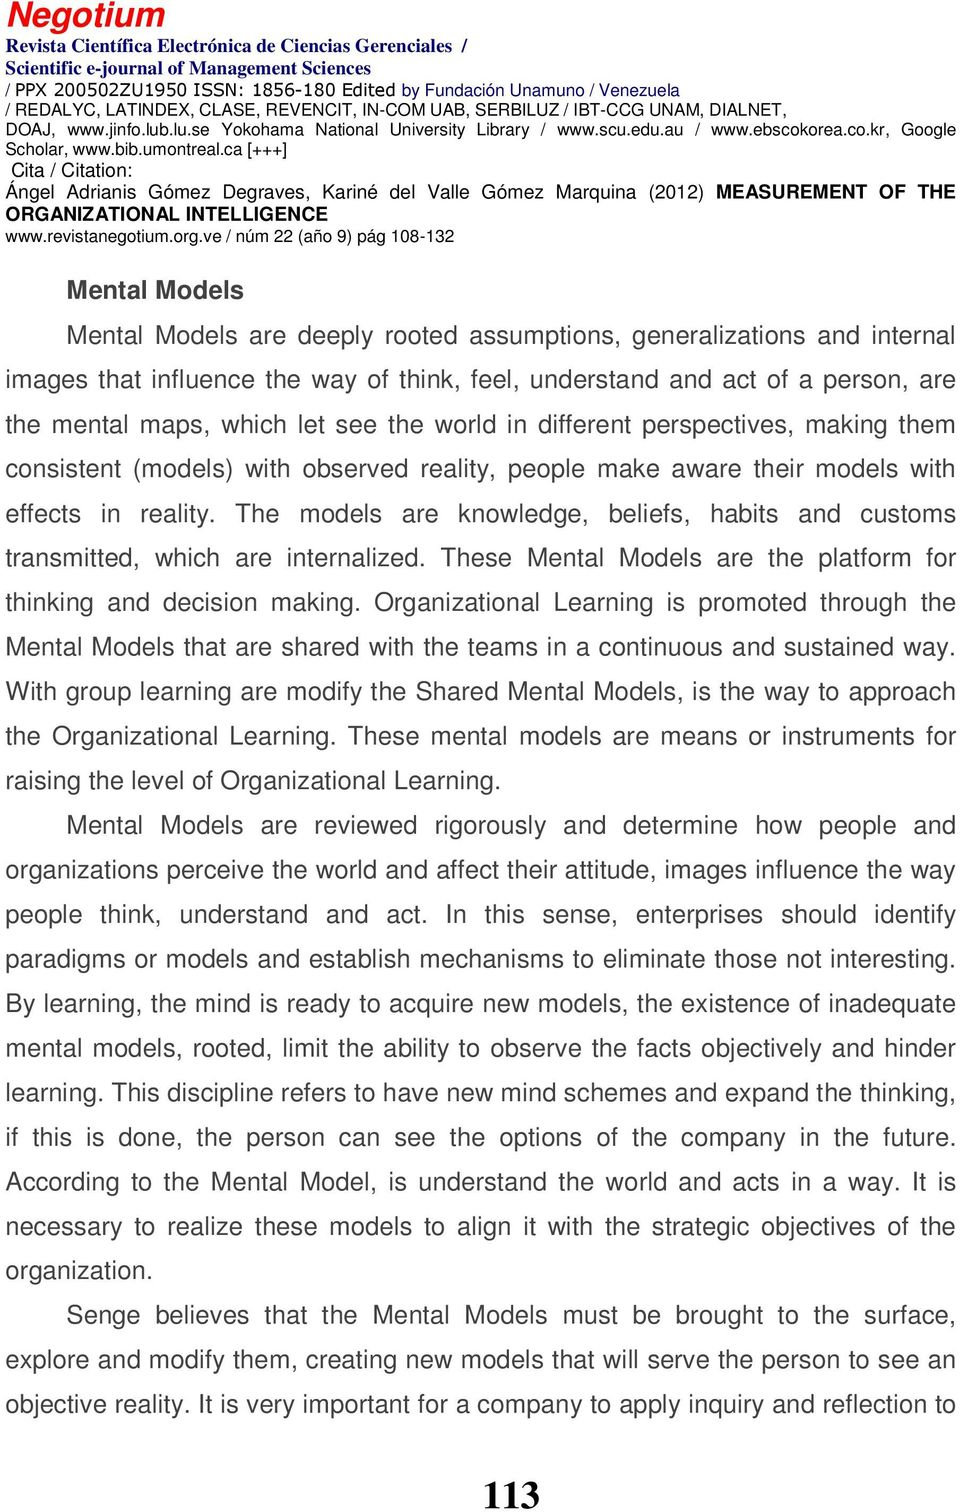 The models are knowledge, beliefs, habits and customs transmitted, which are internalized. These Mental Models are the platform for thinking and decision making.